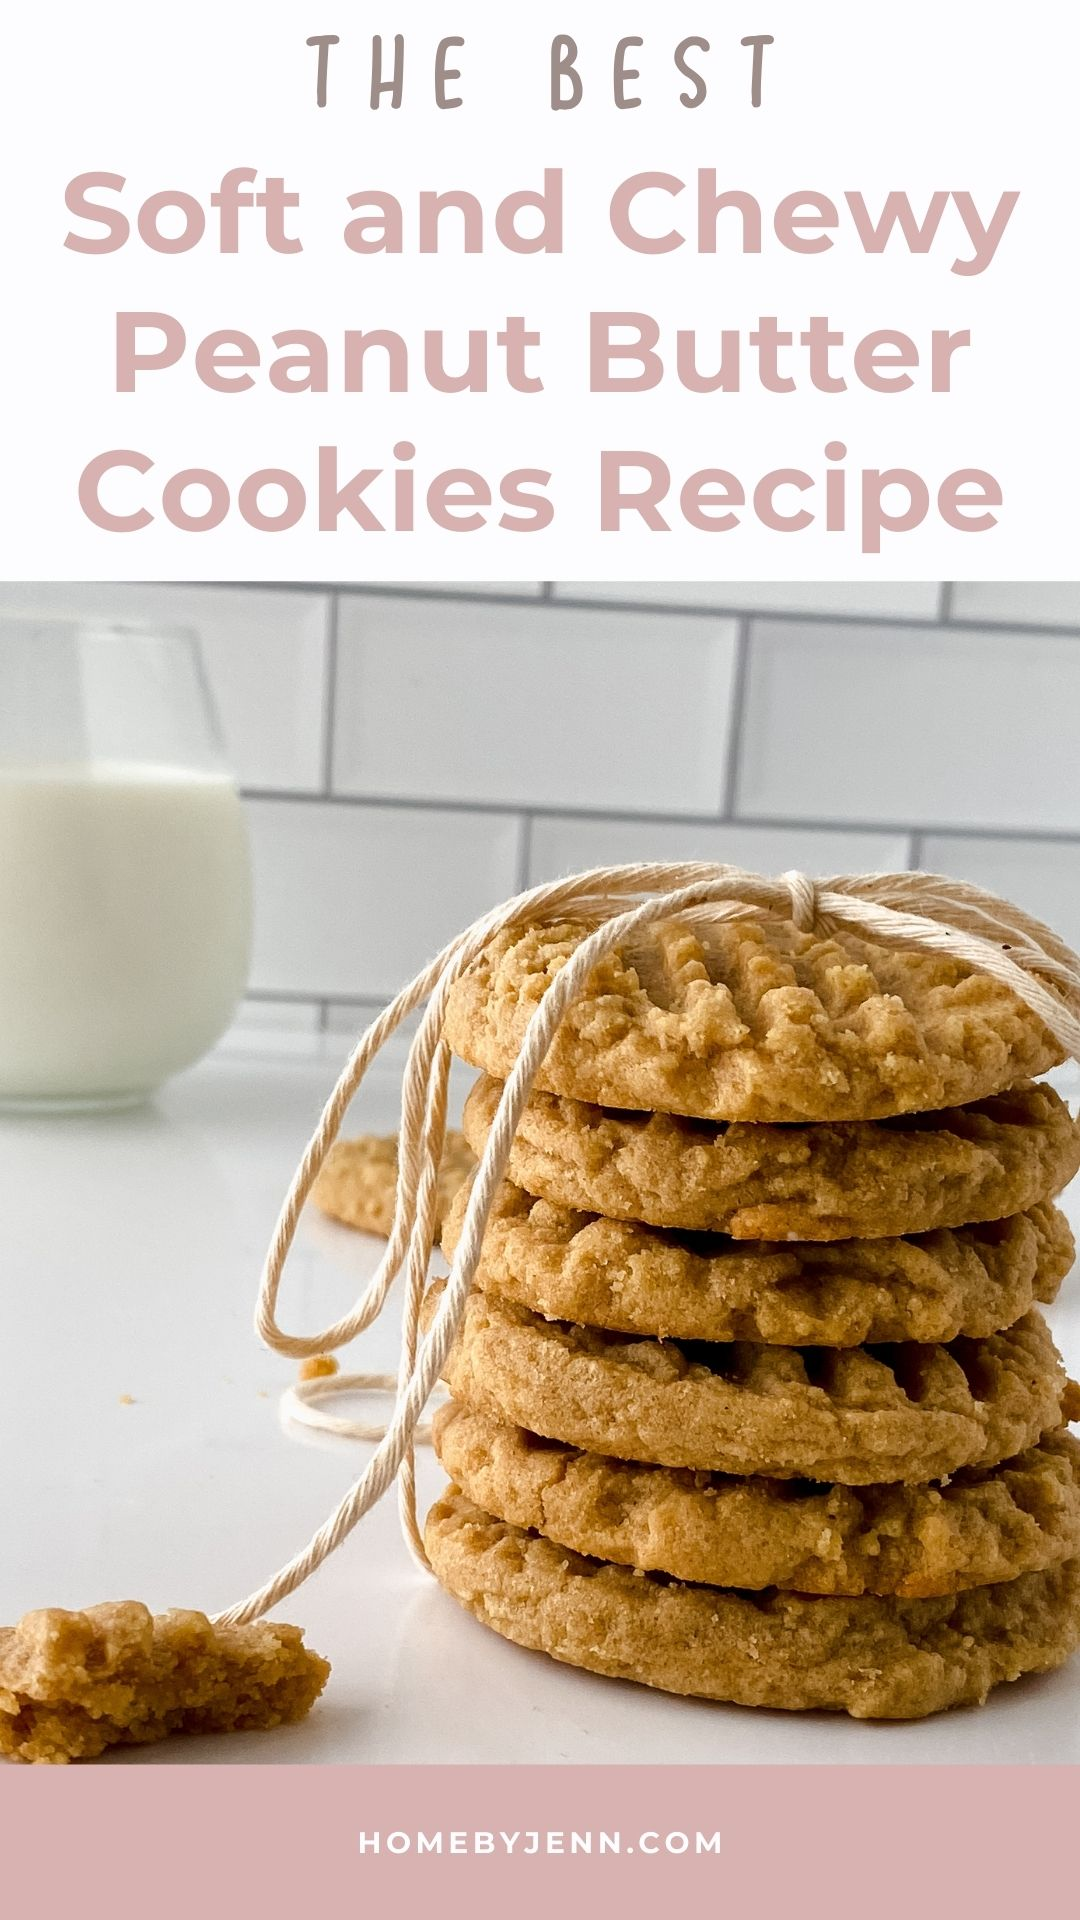 If you love peanut butter cookies and soft and chewy cookies you are going to love this recipe for soft peanut butter cookies. This peanut butter cookies recipe makes the best soft and chewy peanut butter cookies you'll ever eat. Enjoy after dinner or as an after-school snack. via @homebyjenn